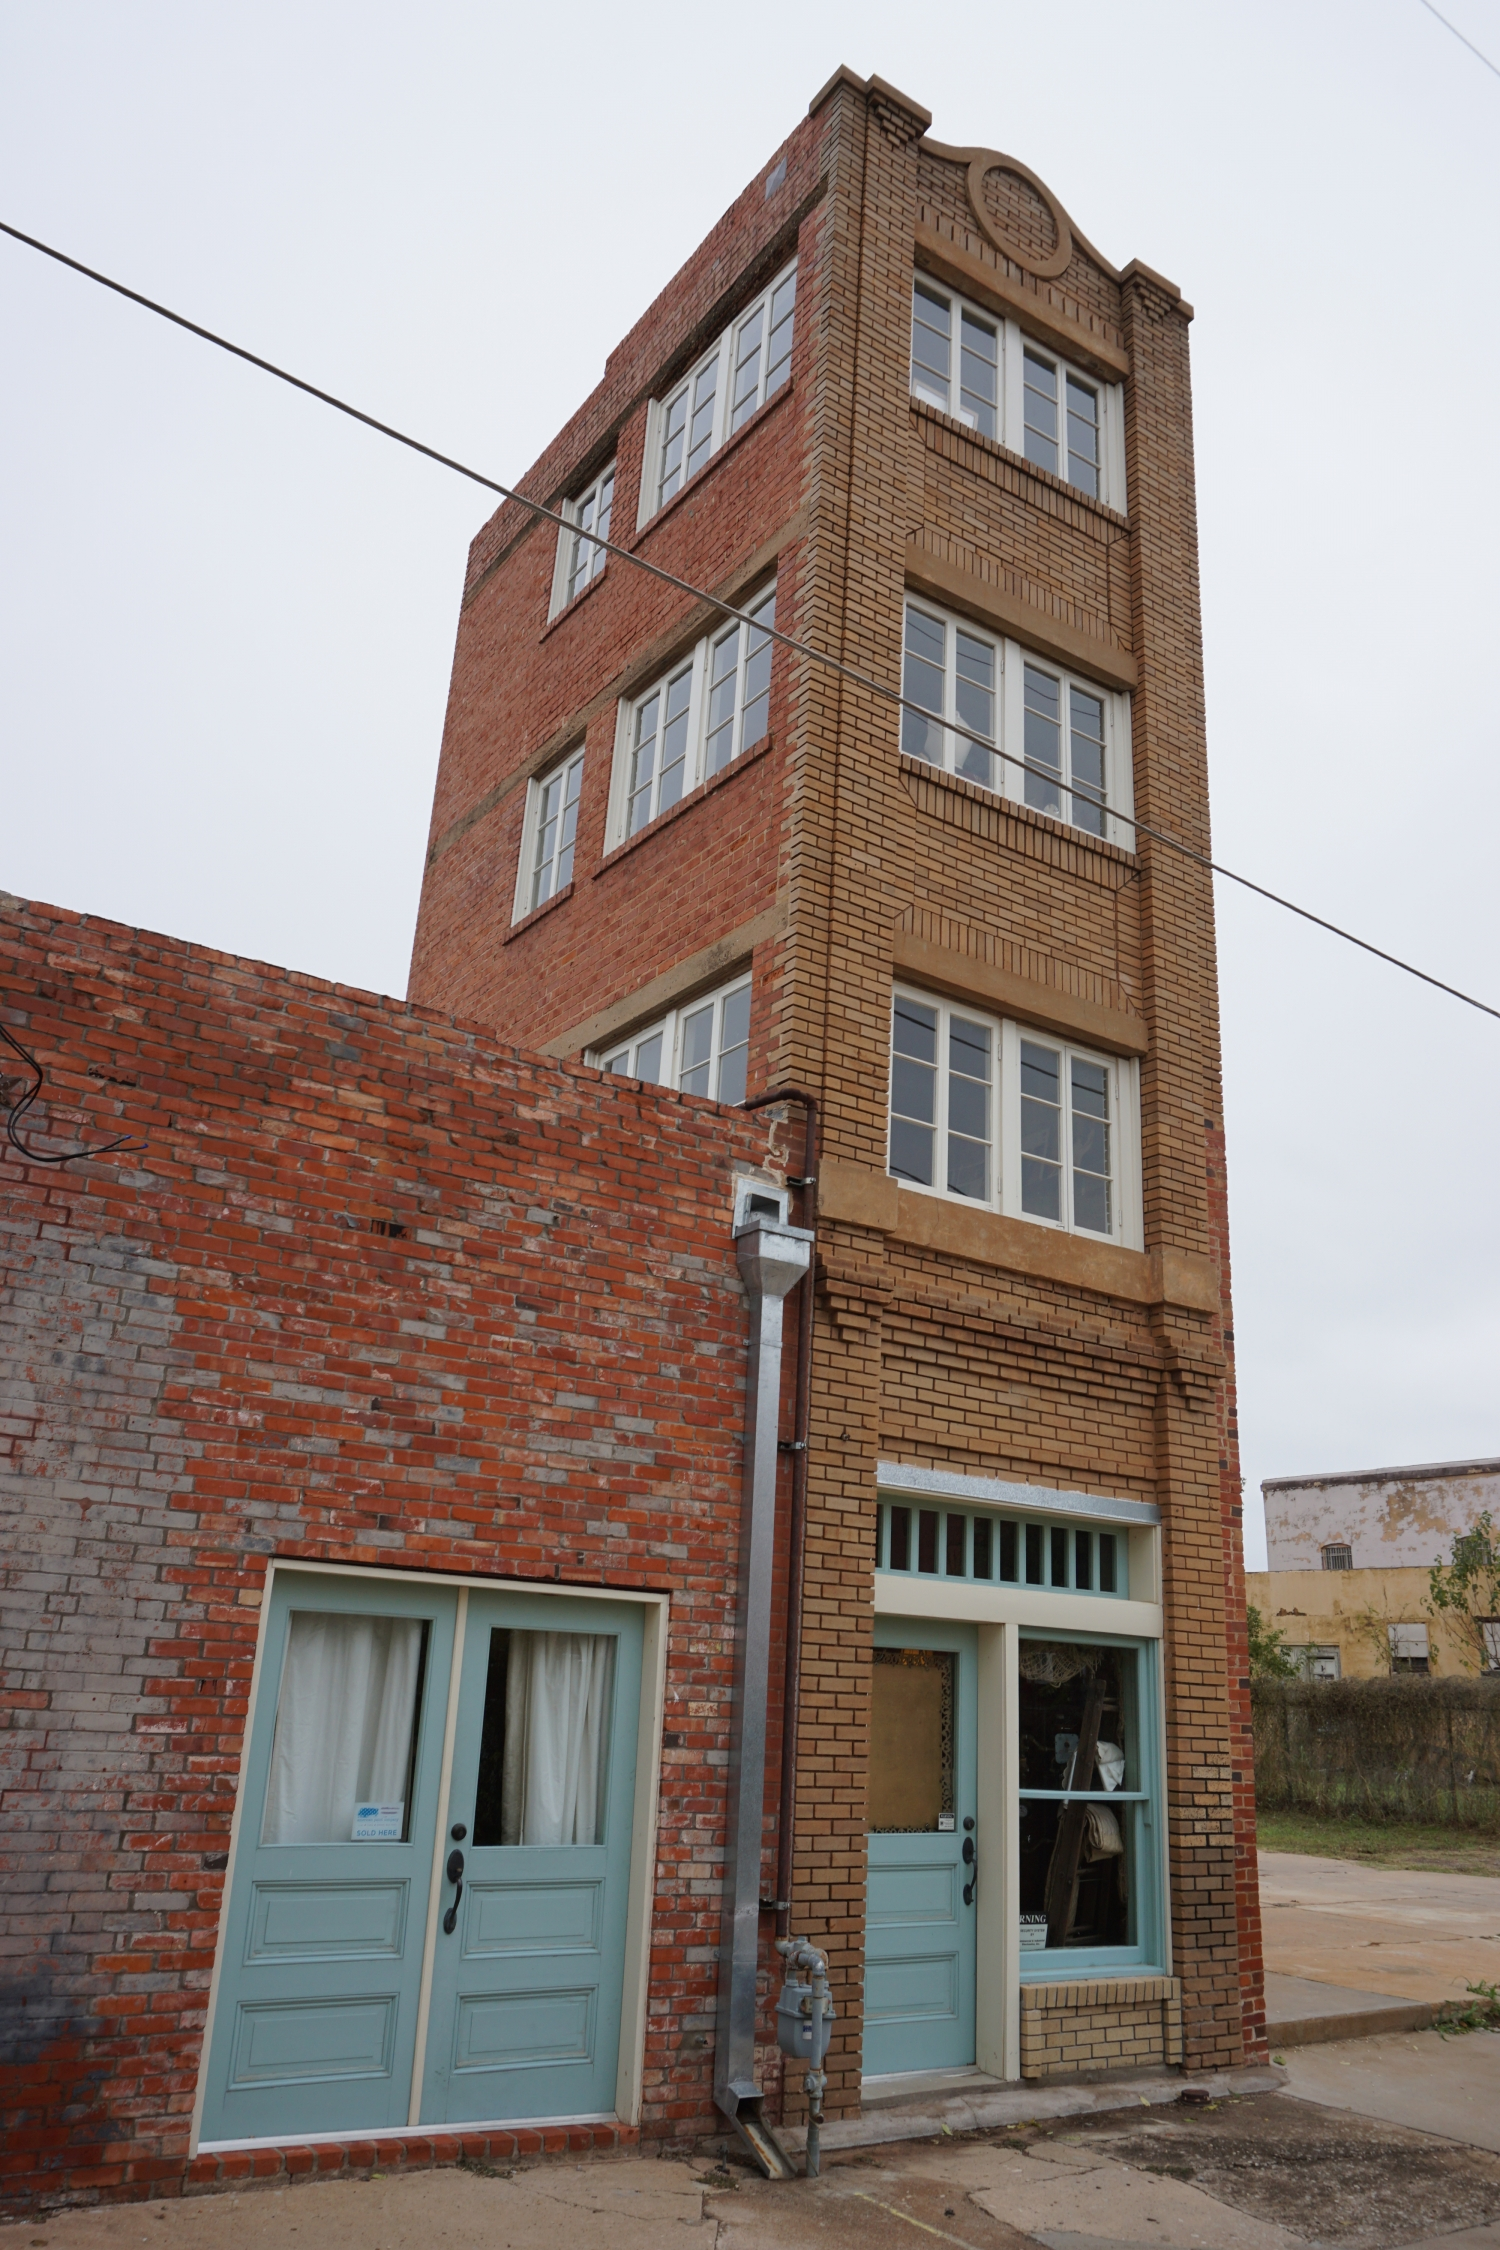 Tower attached to building.